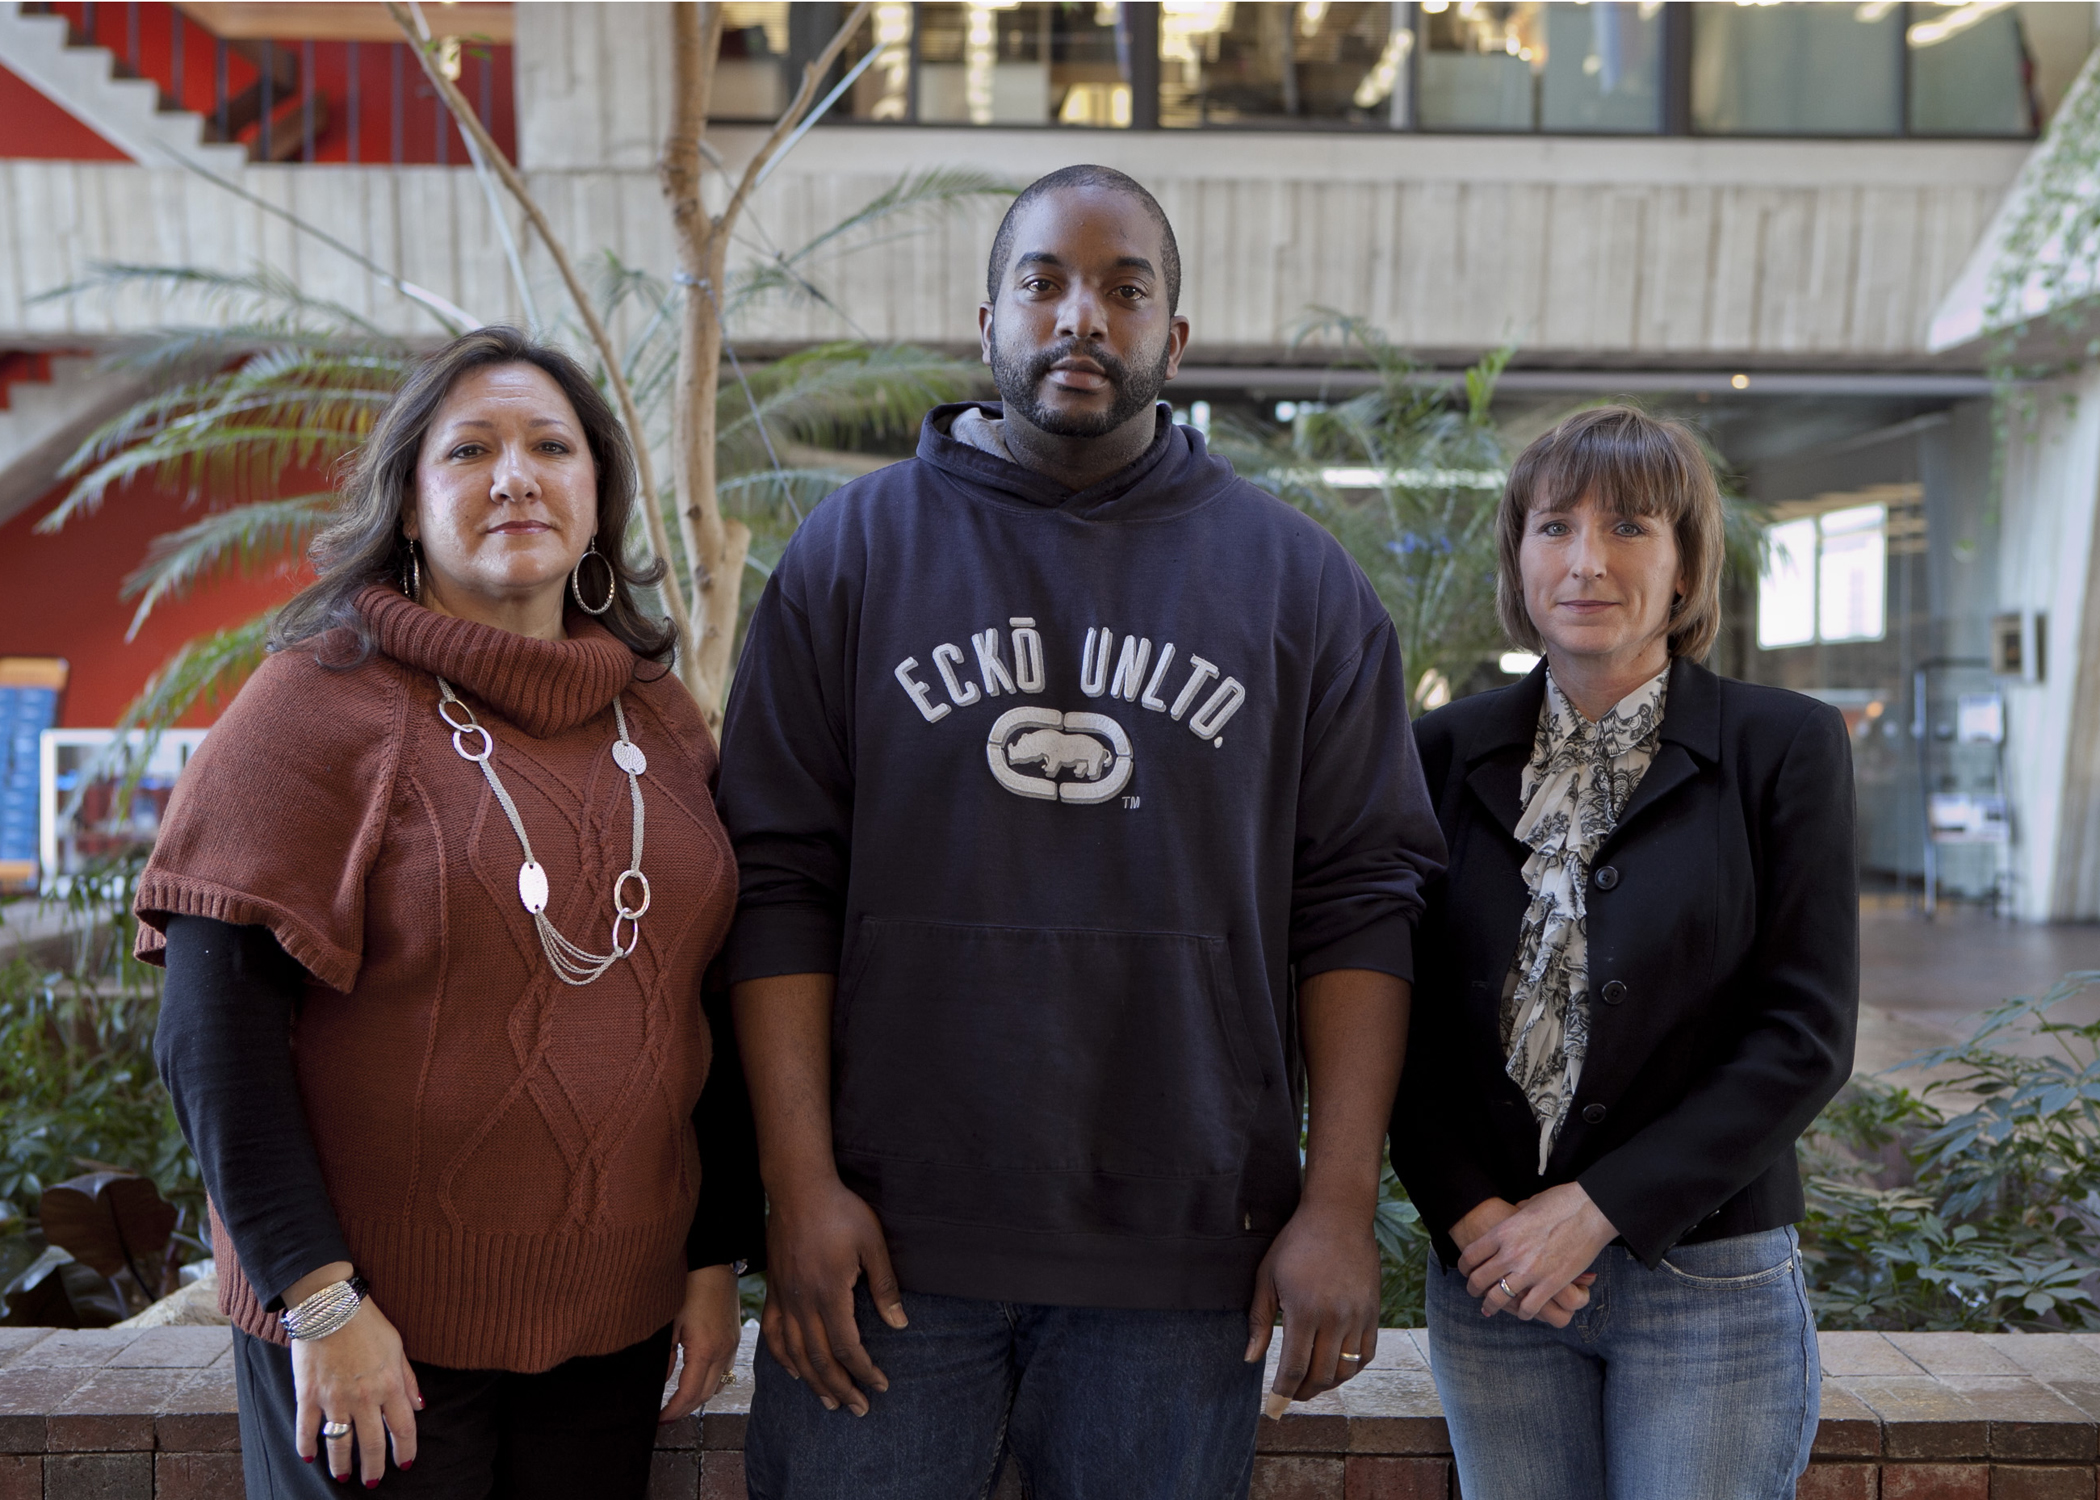 These individuals received degrees through Fermilab's Tuition Assistance Program. From left: Martha Garcia, FE, BS in Business Administration; Stephen Cozzens, AD, BS in Business Administration; Linda Bashaw, AD, BS in Information Technology. Not pictured: Herman Cease, PD, PhD in Materials Science and Engineering; Matthew Domeier, AD, AA in Science; Alex Hernandez, BS, BS in Network and Communication Management. Photo: Cindy Arnold